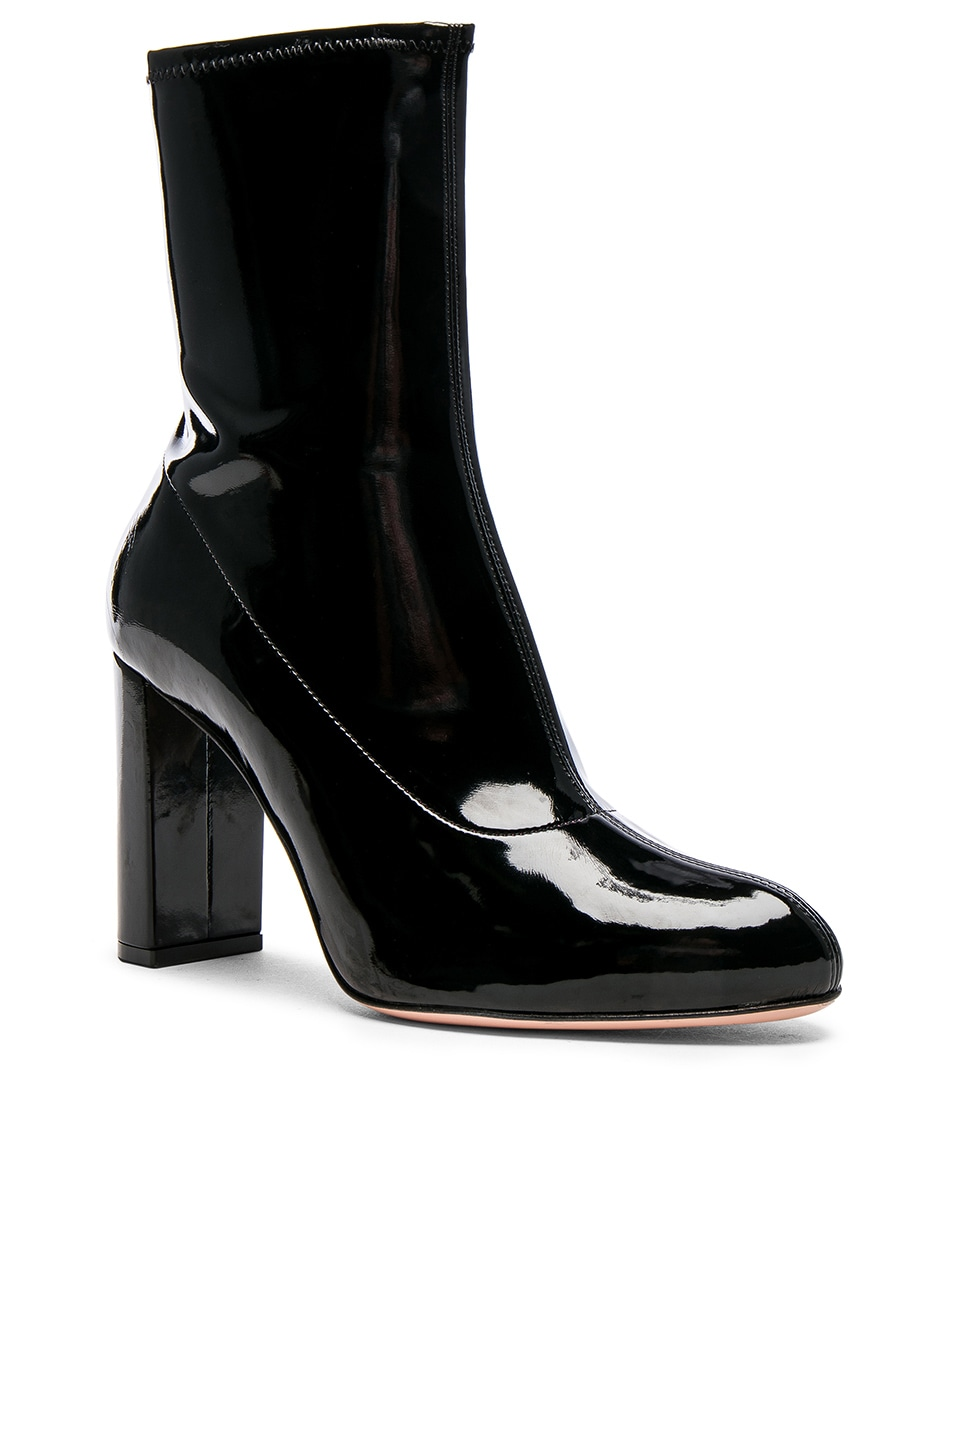 Image 2 of Oscar Tiye Patent Leather Giorgia Boots in Black Latex